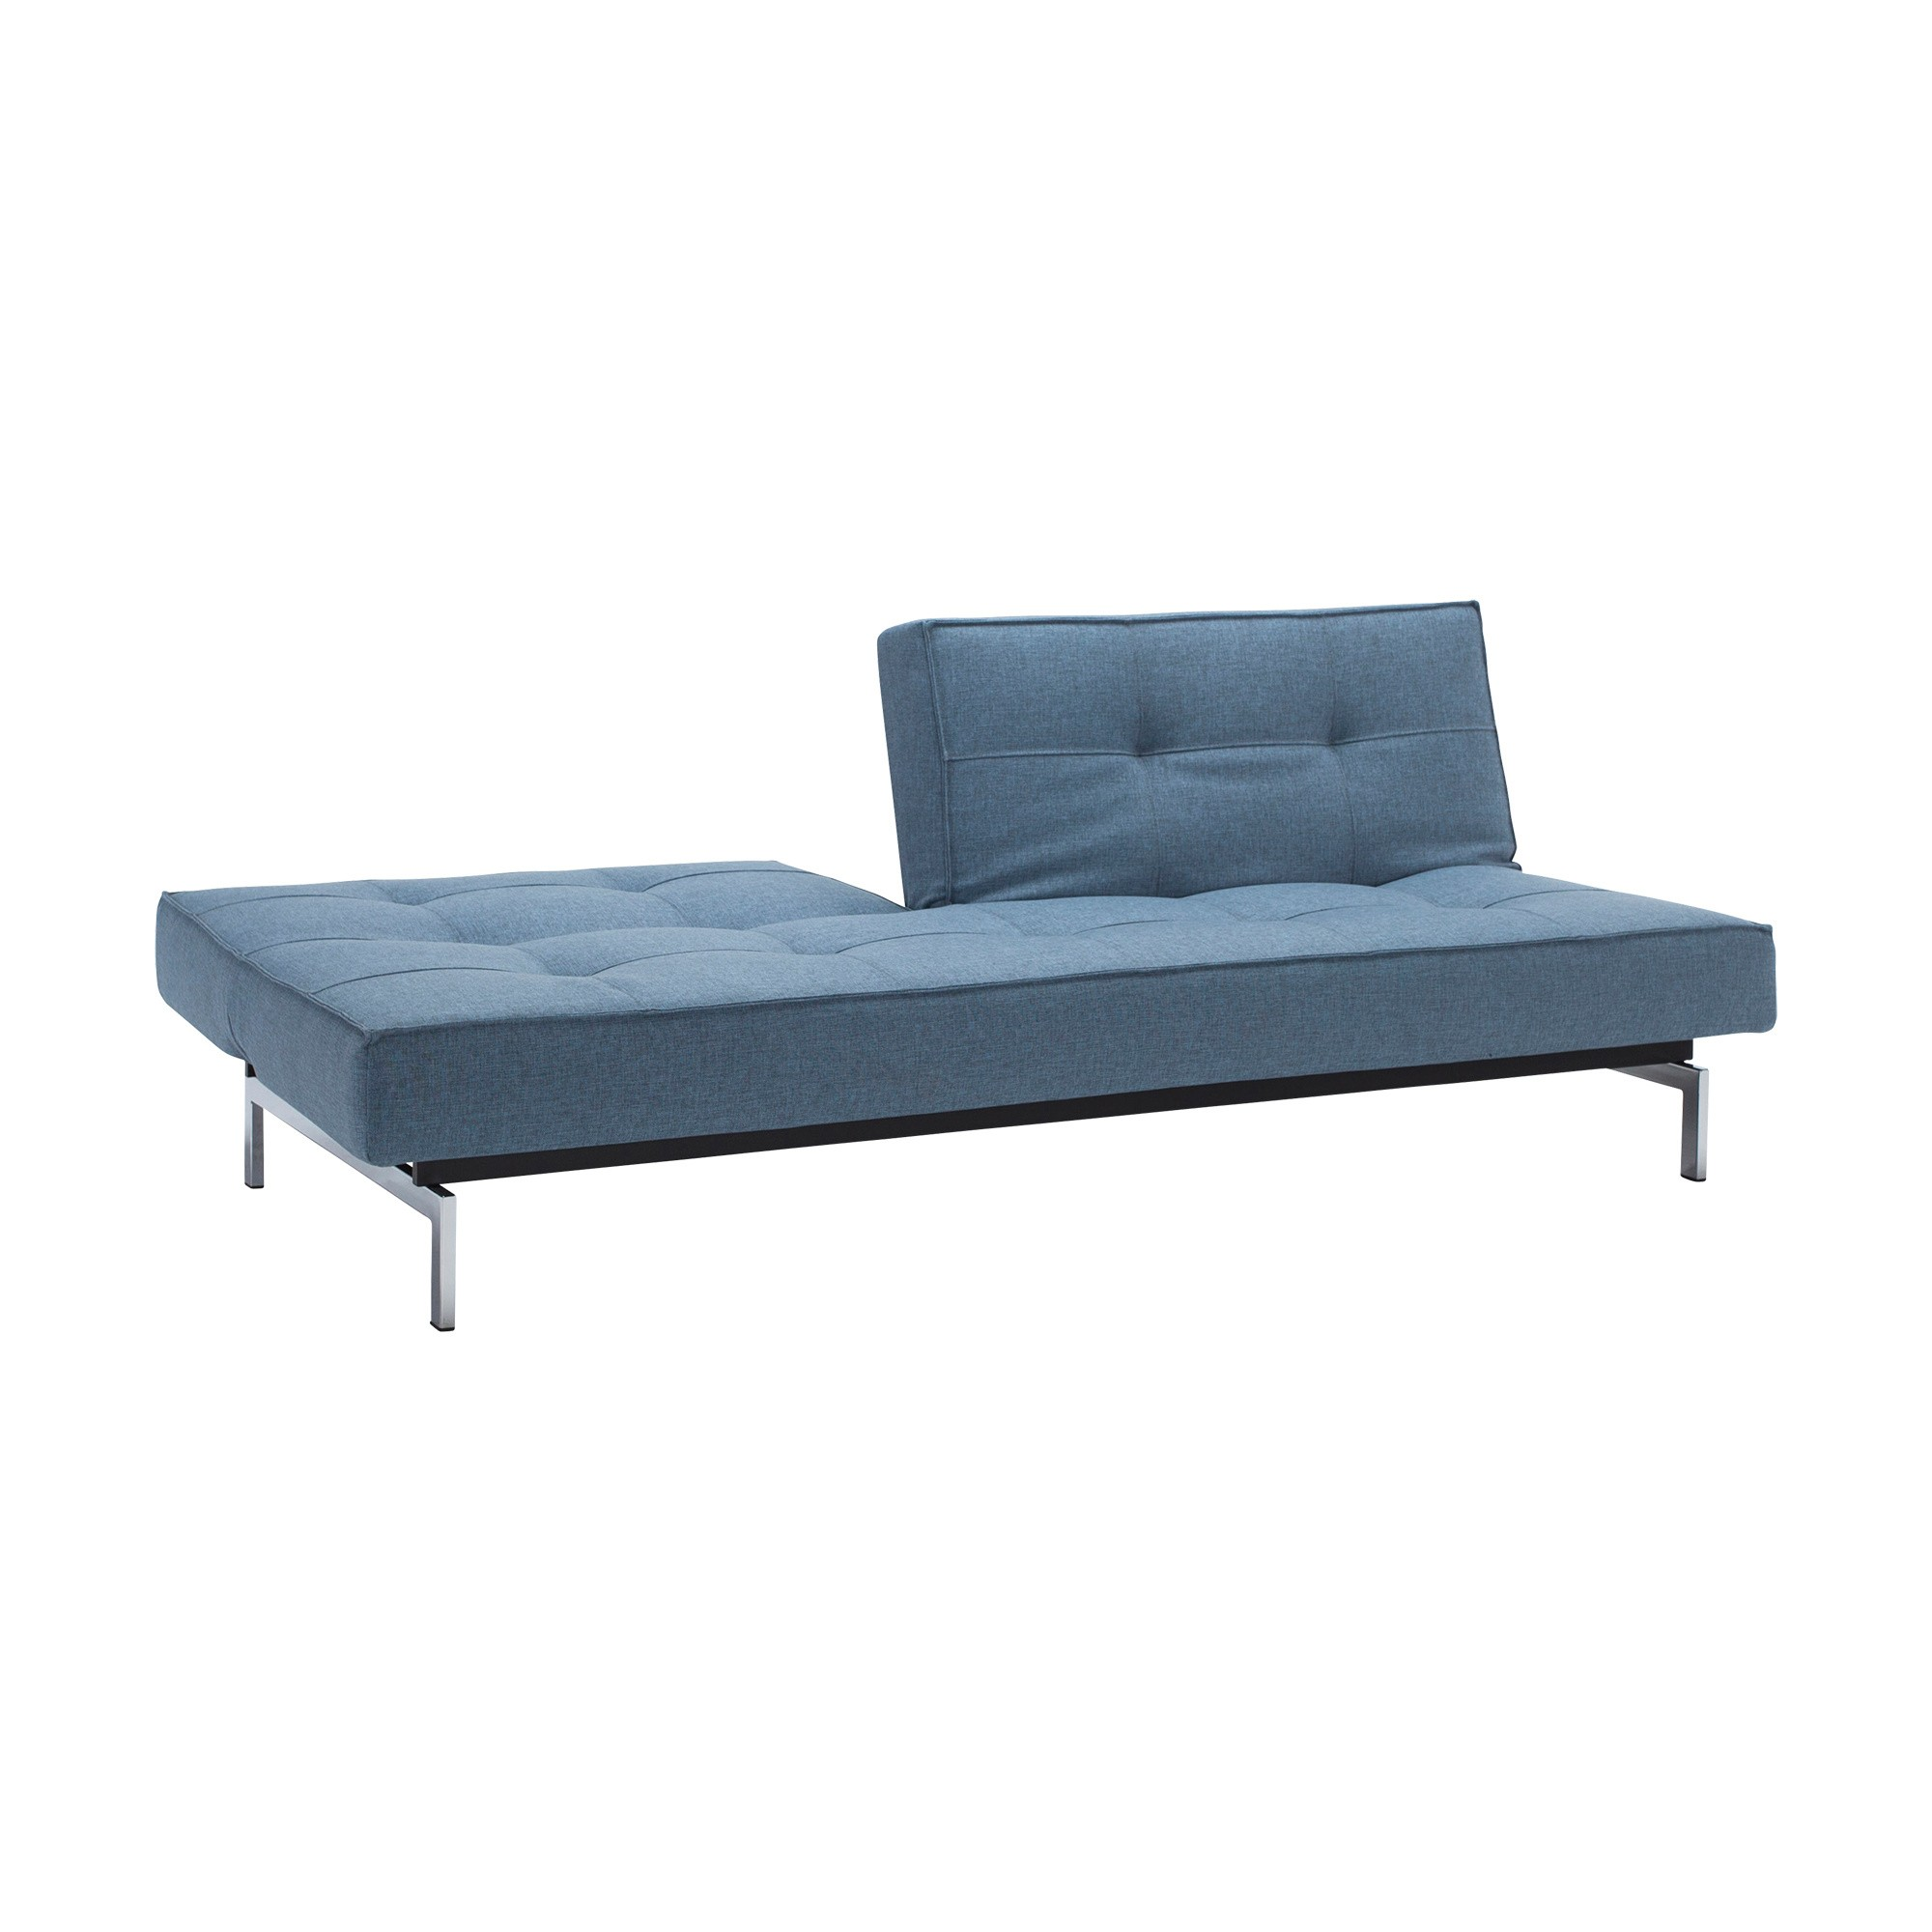 Picture of: Innovation Splitback Sofa Bed Chrome 210x89cm Ambientedirect